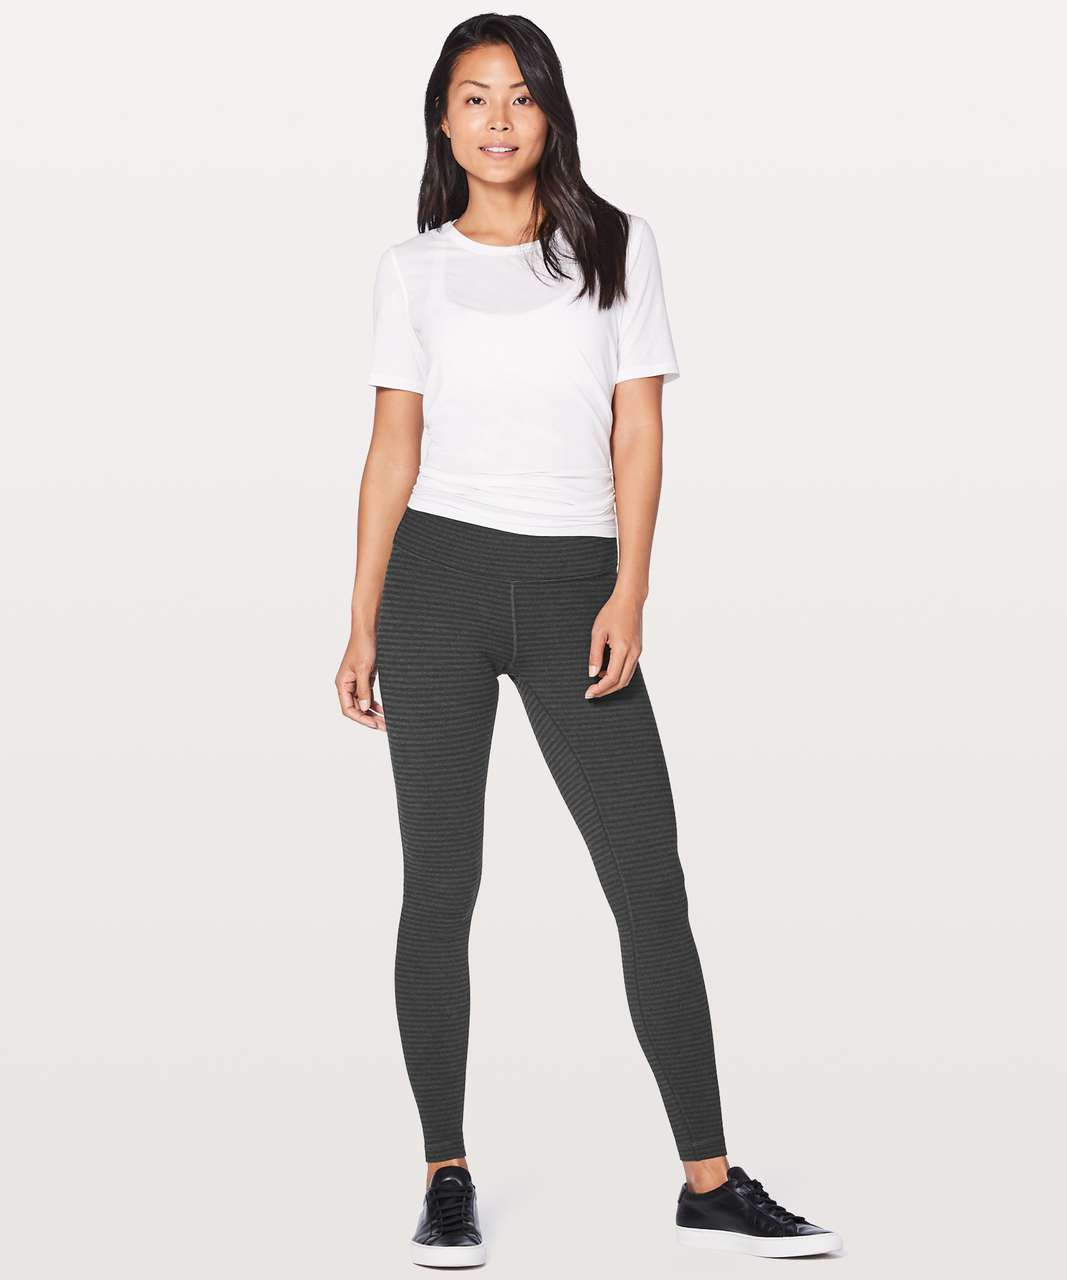 "Lululemon Wunder Under Hi-Rise Tight 28"" - Luon Pique Black Dark Slate"